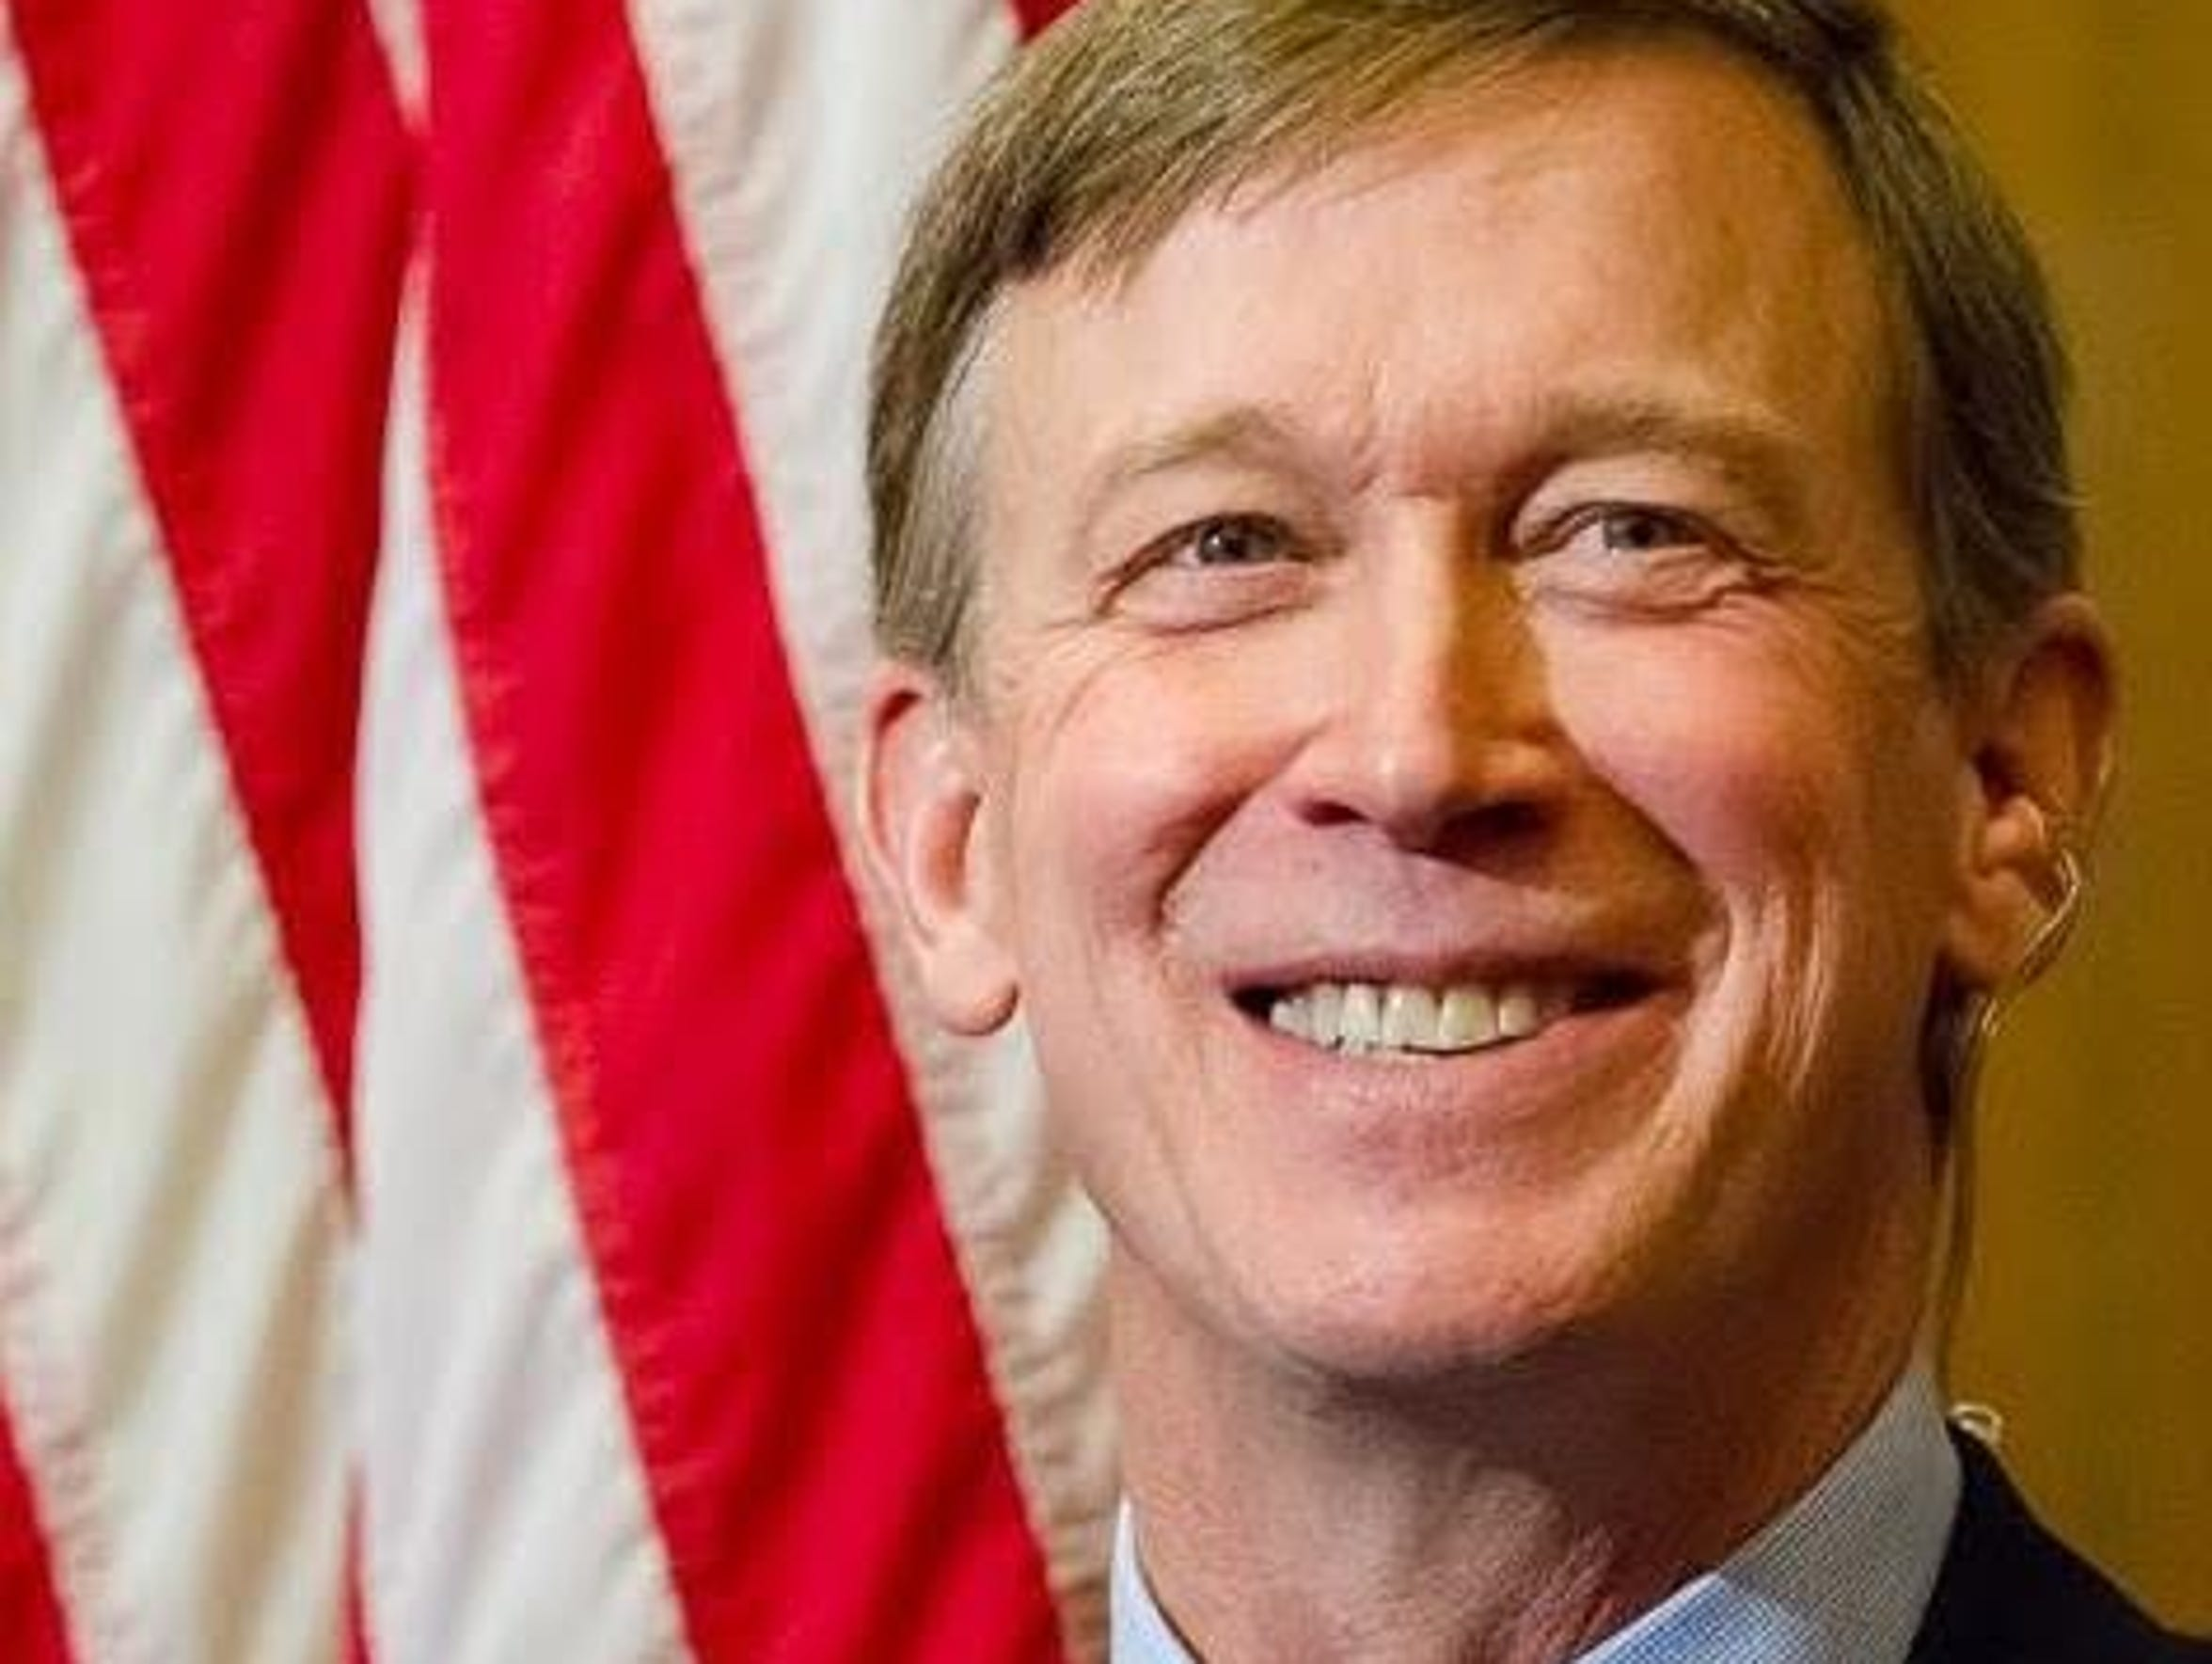 Colorado Gov. John Hickenlooper: His administration partnered with the Markle Foundation to get Skillful off the ground.